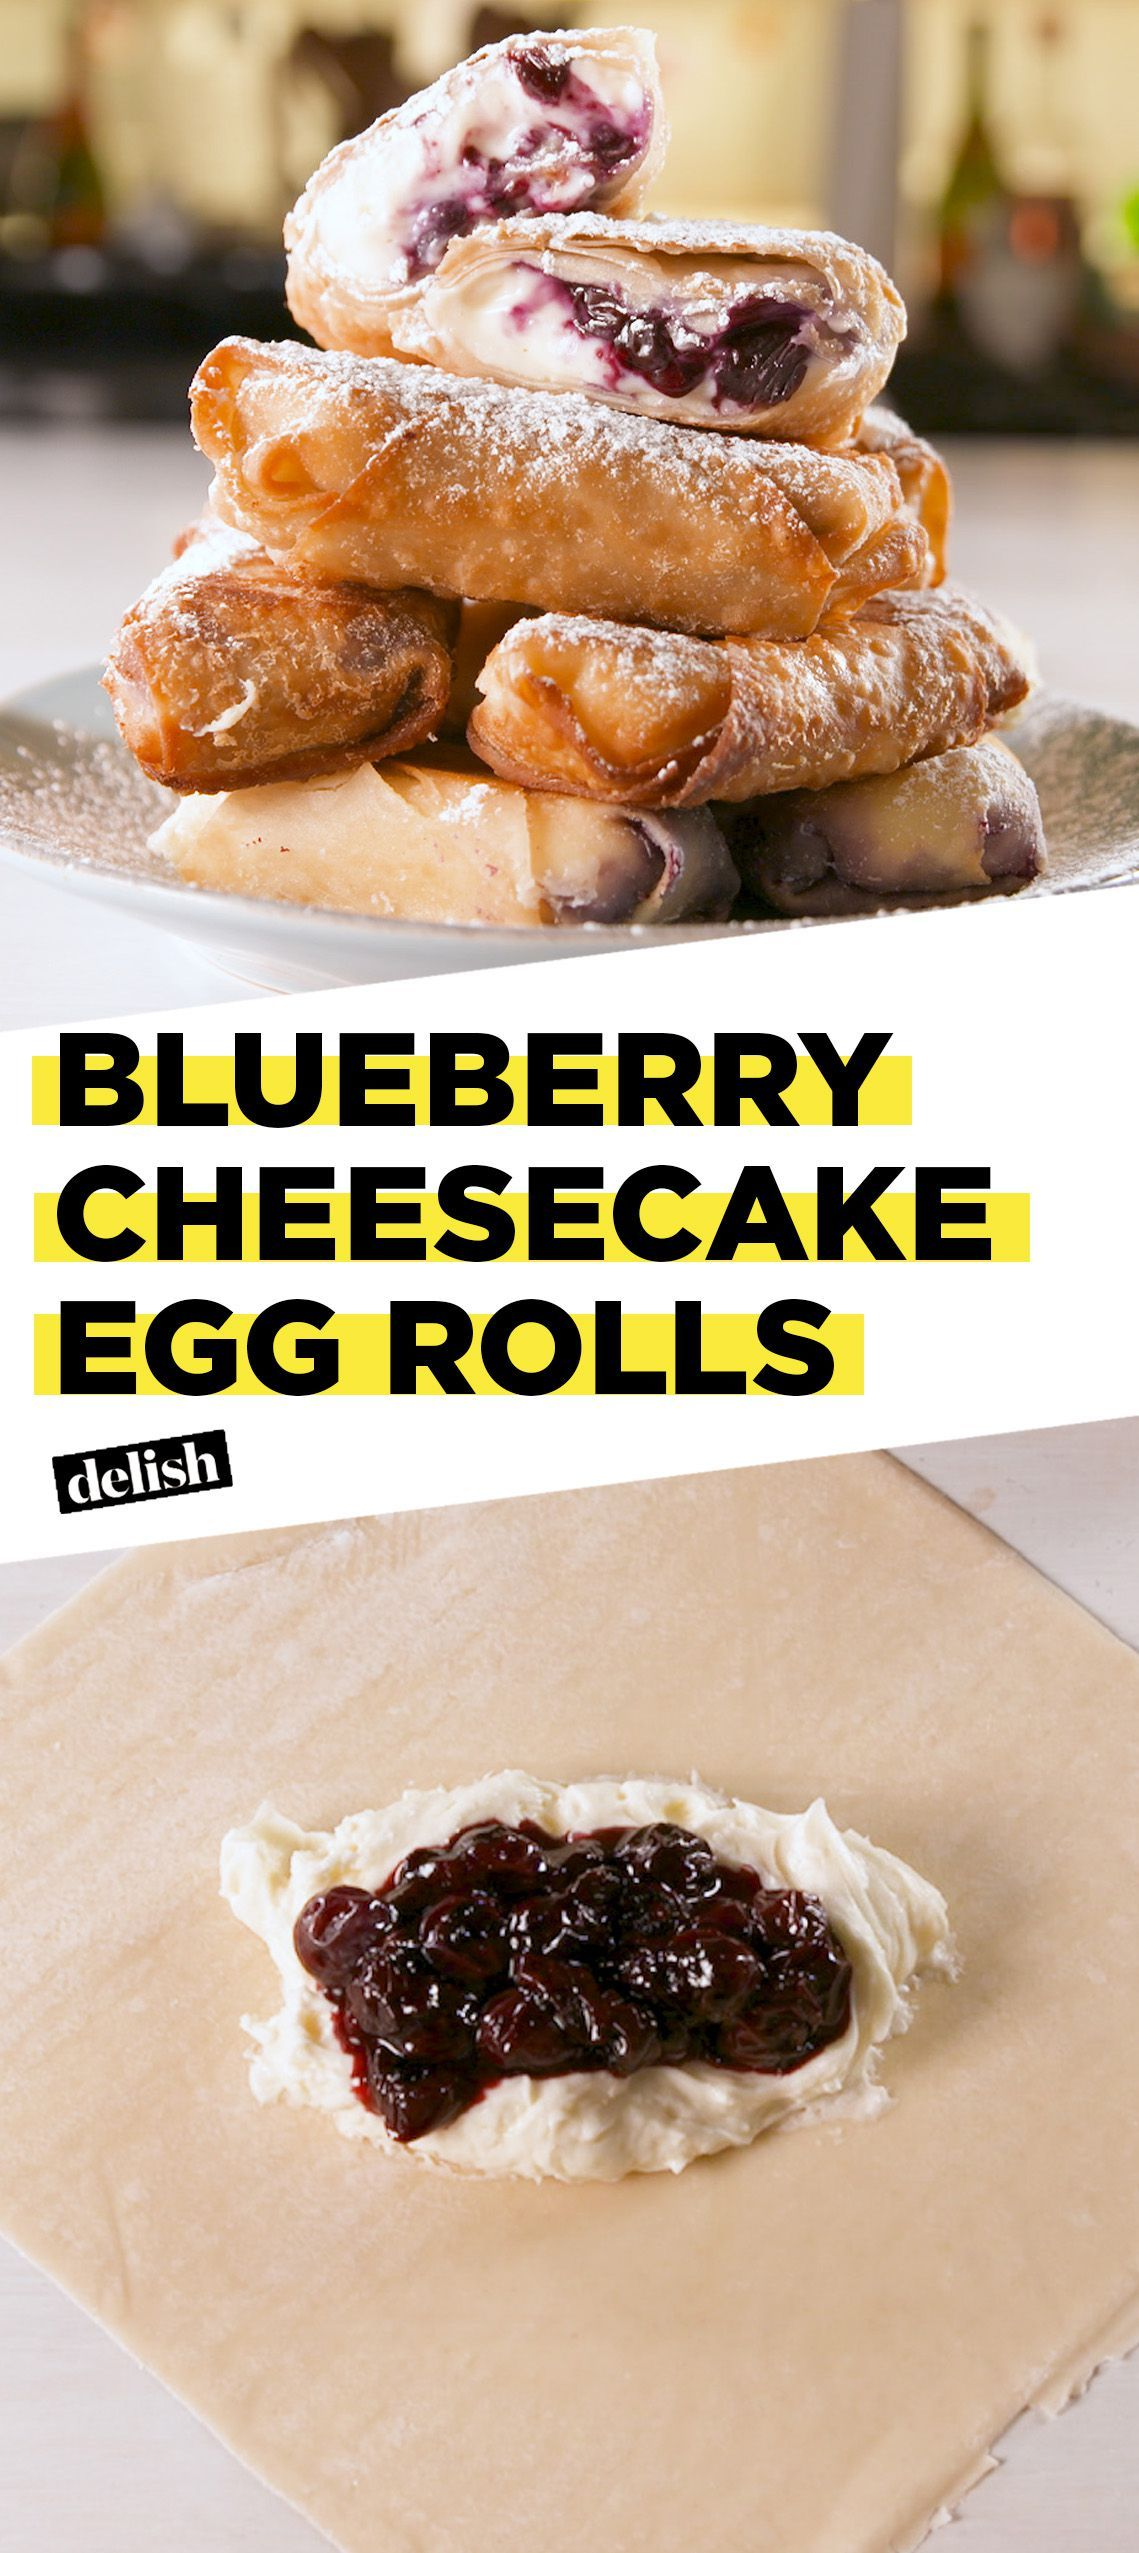 Blueberry Cheesecake Egg Rolls >>> All Other Desserts